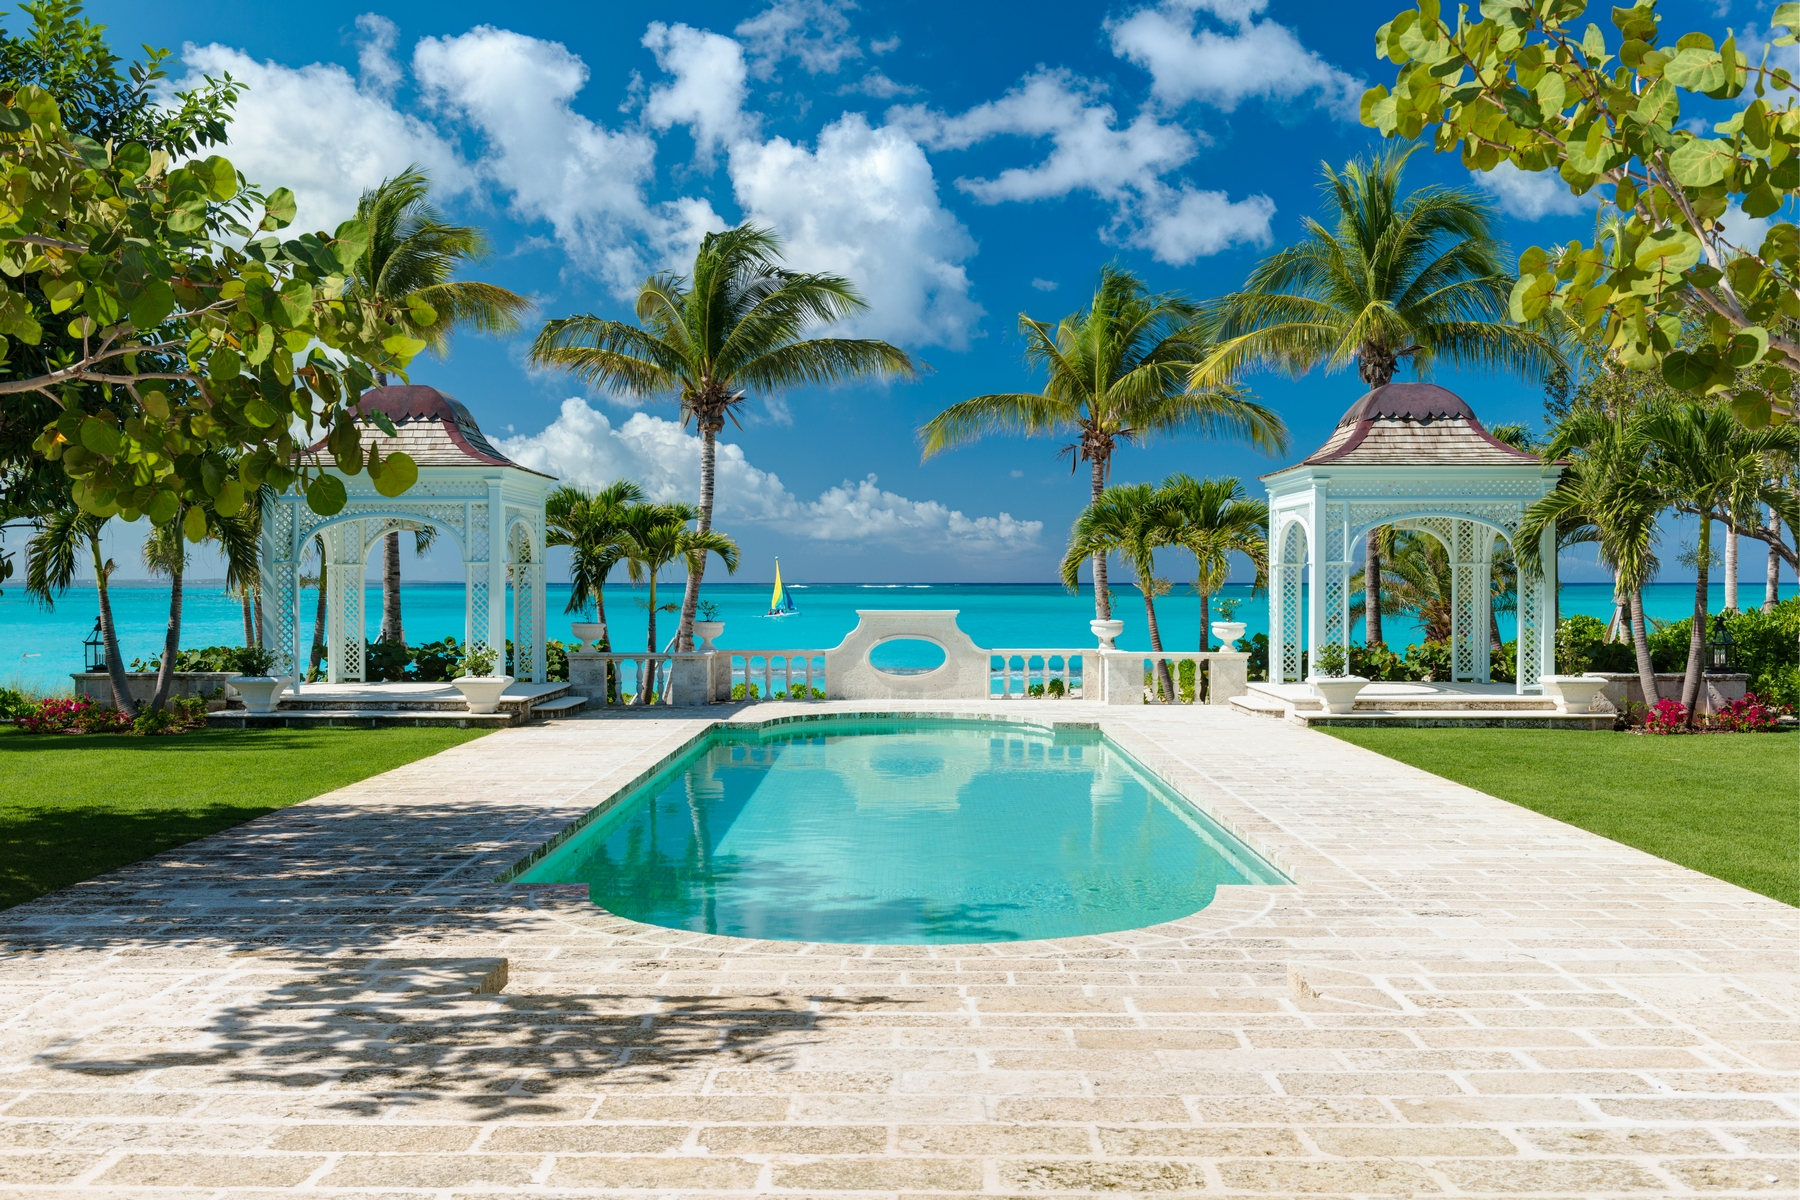 Single Family Home for Sale at Coral Pavilion Grace Bay, Turks And Caicos Islands